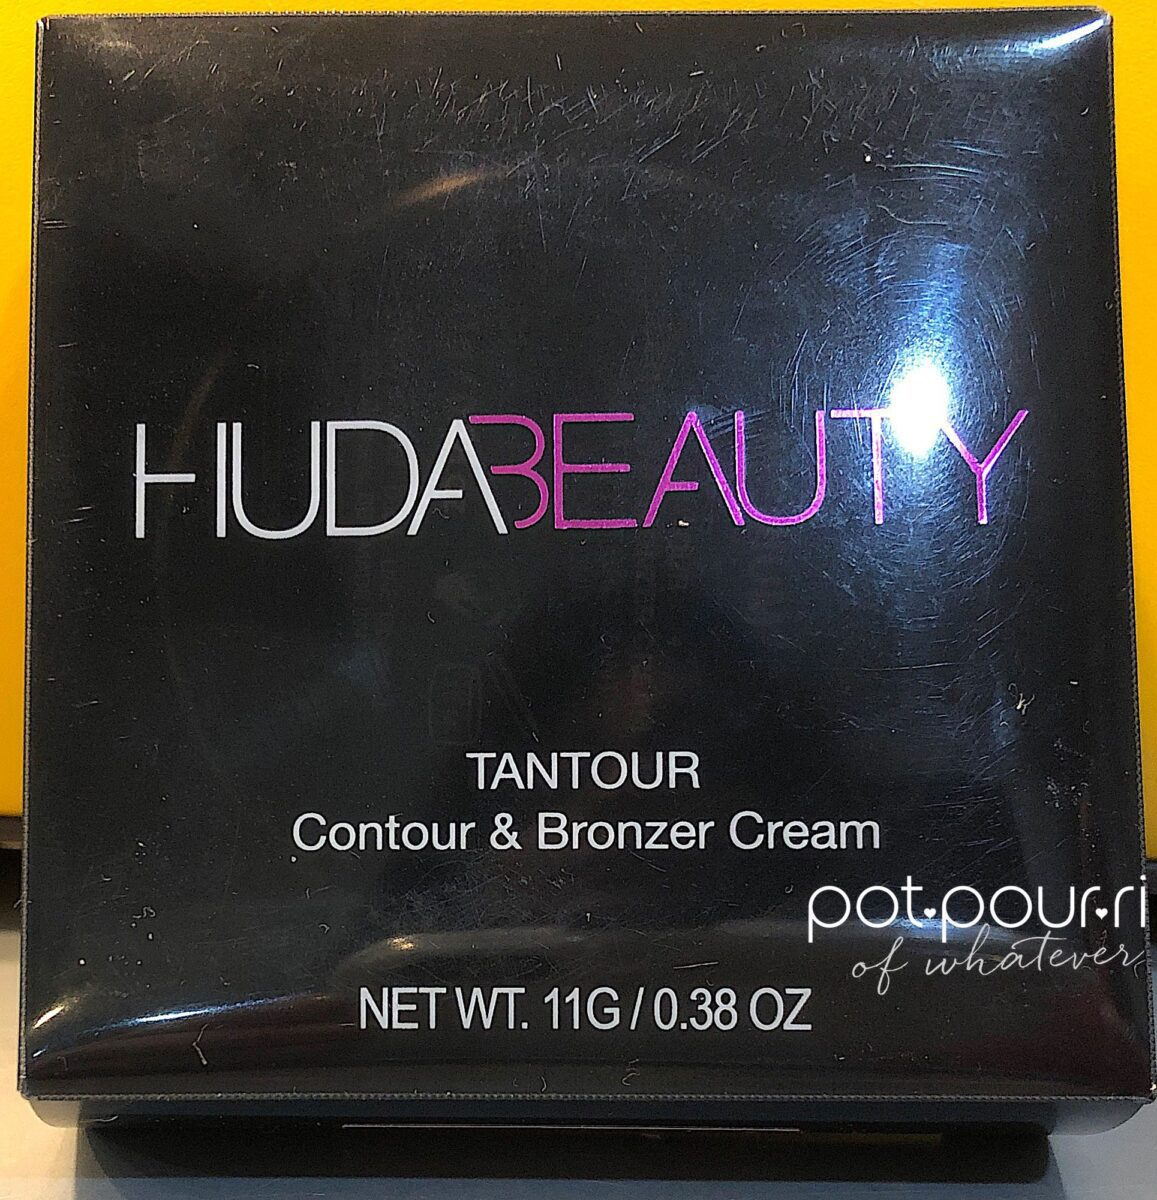 HUDA TANTOUR PLASTIC PACKAGING OUTER BOX